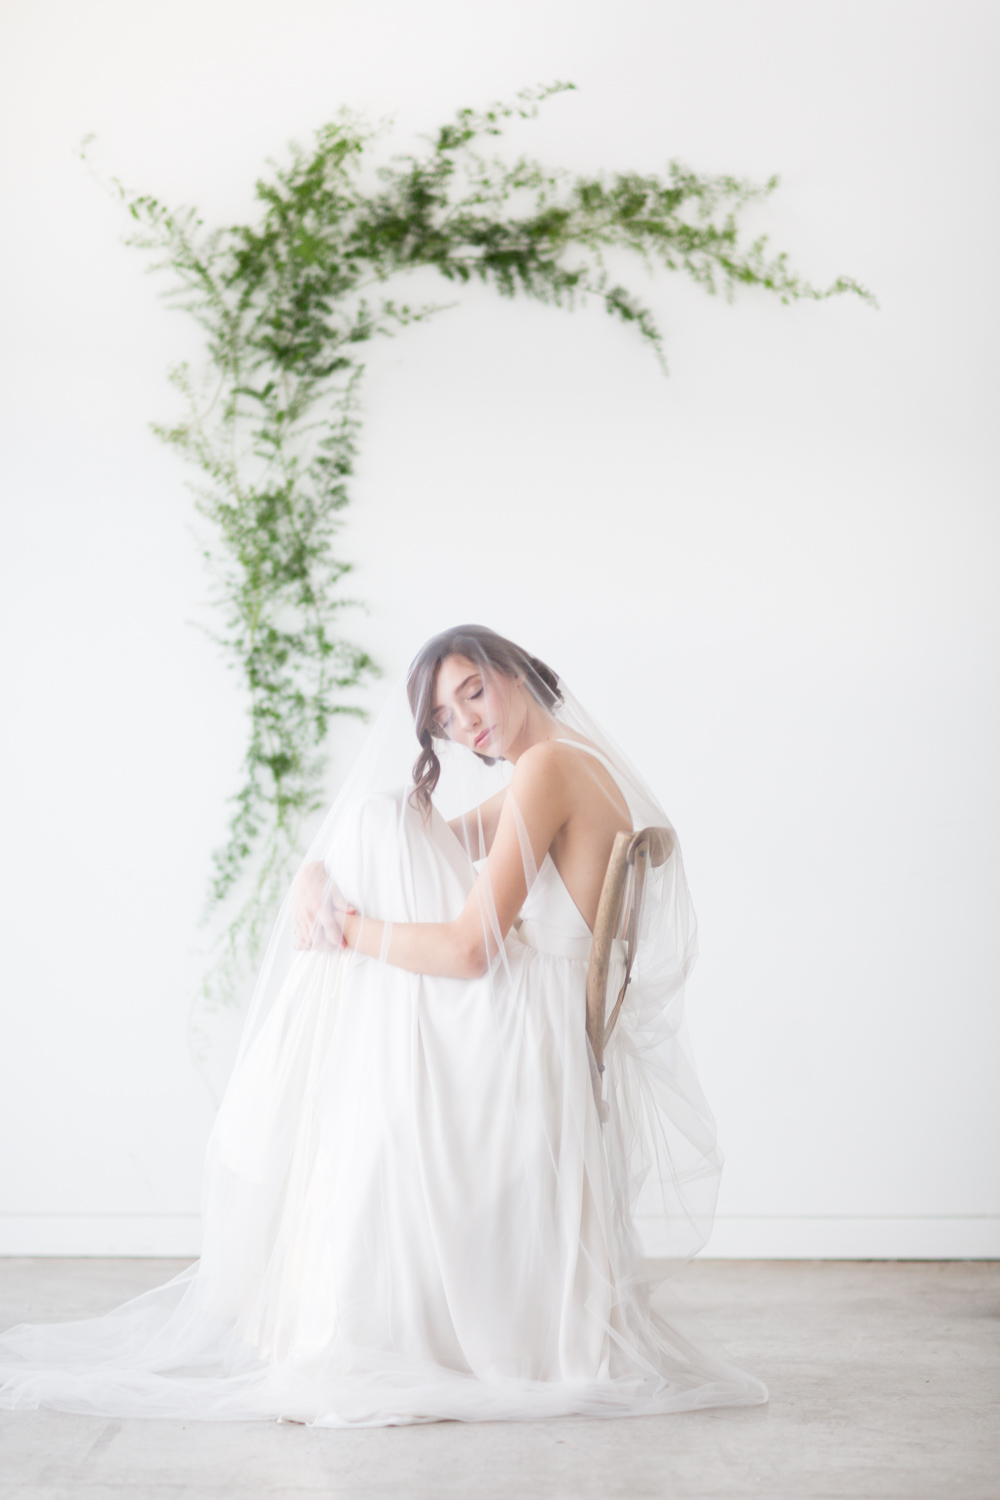 Minimal and timeless portrait of a bride wearing Brianna Truvelle dress